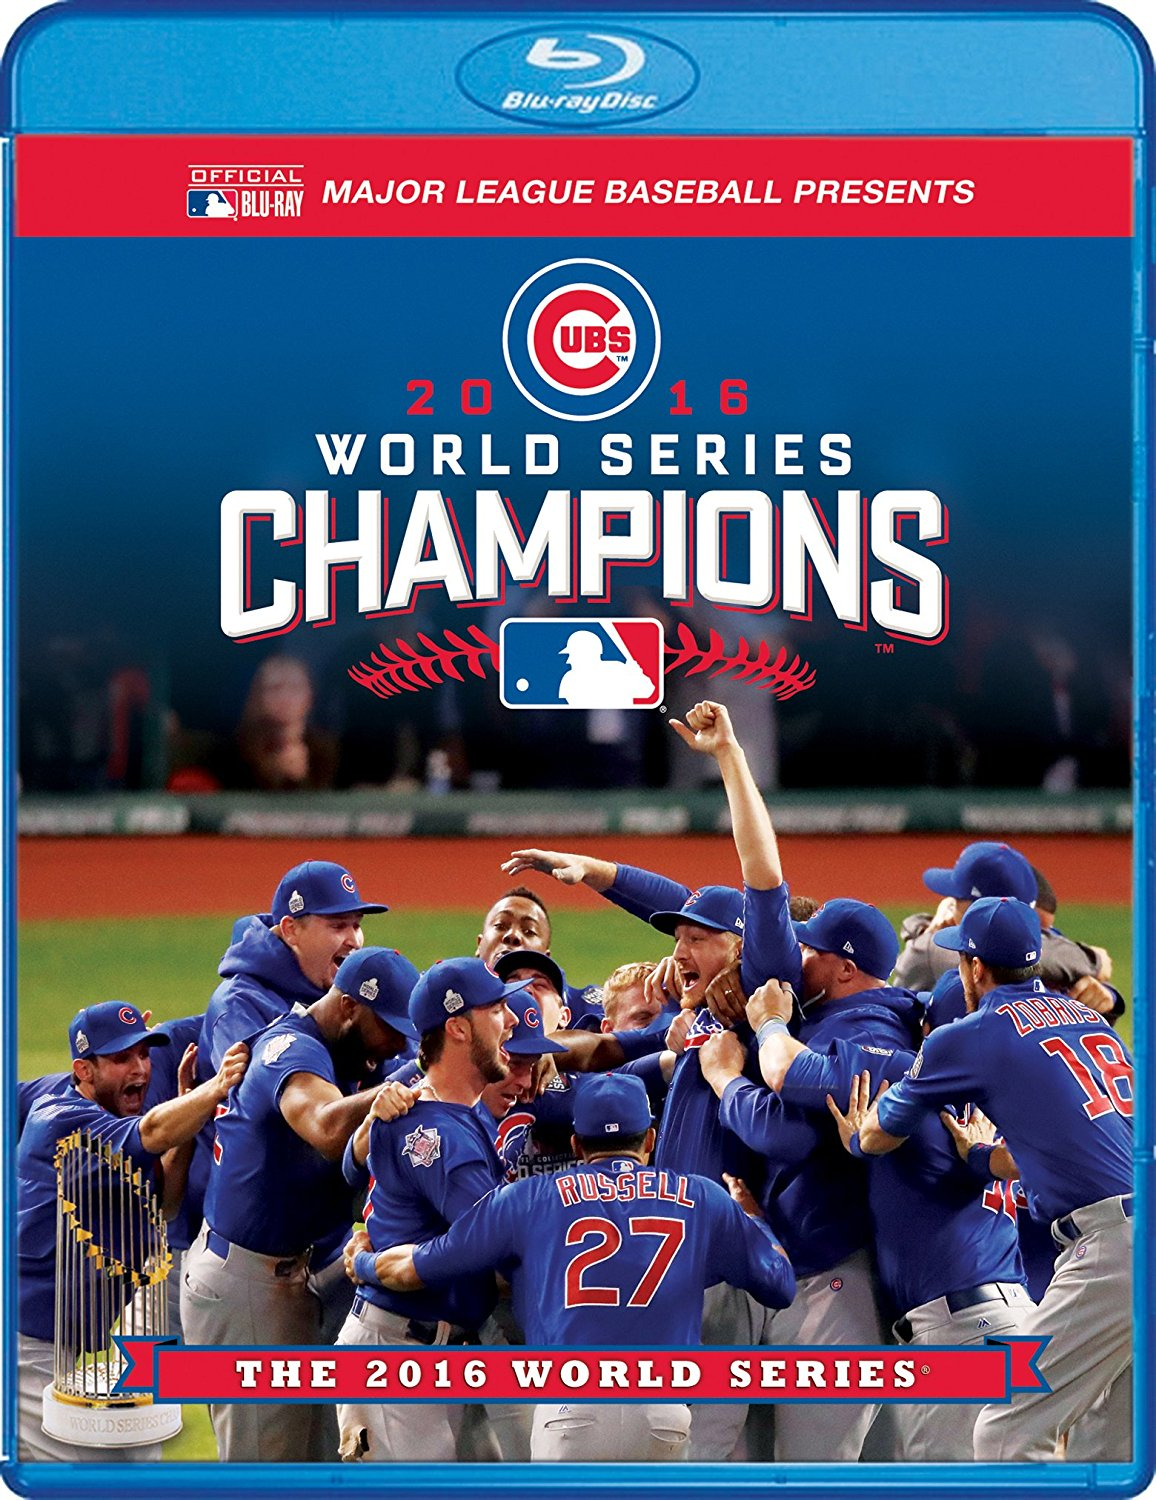 2016 World Series - 2016 World Series Champions: The Chicago Cubs